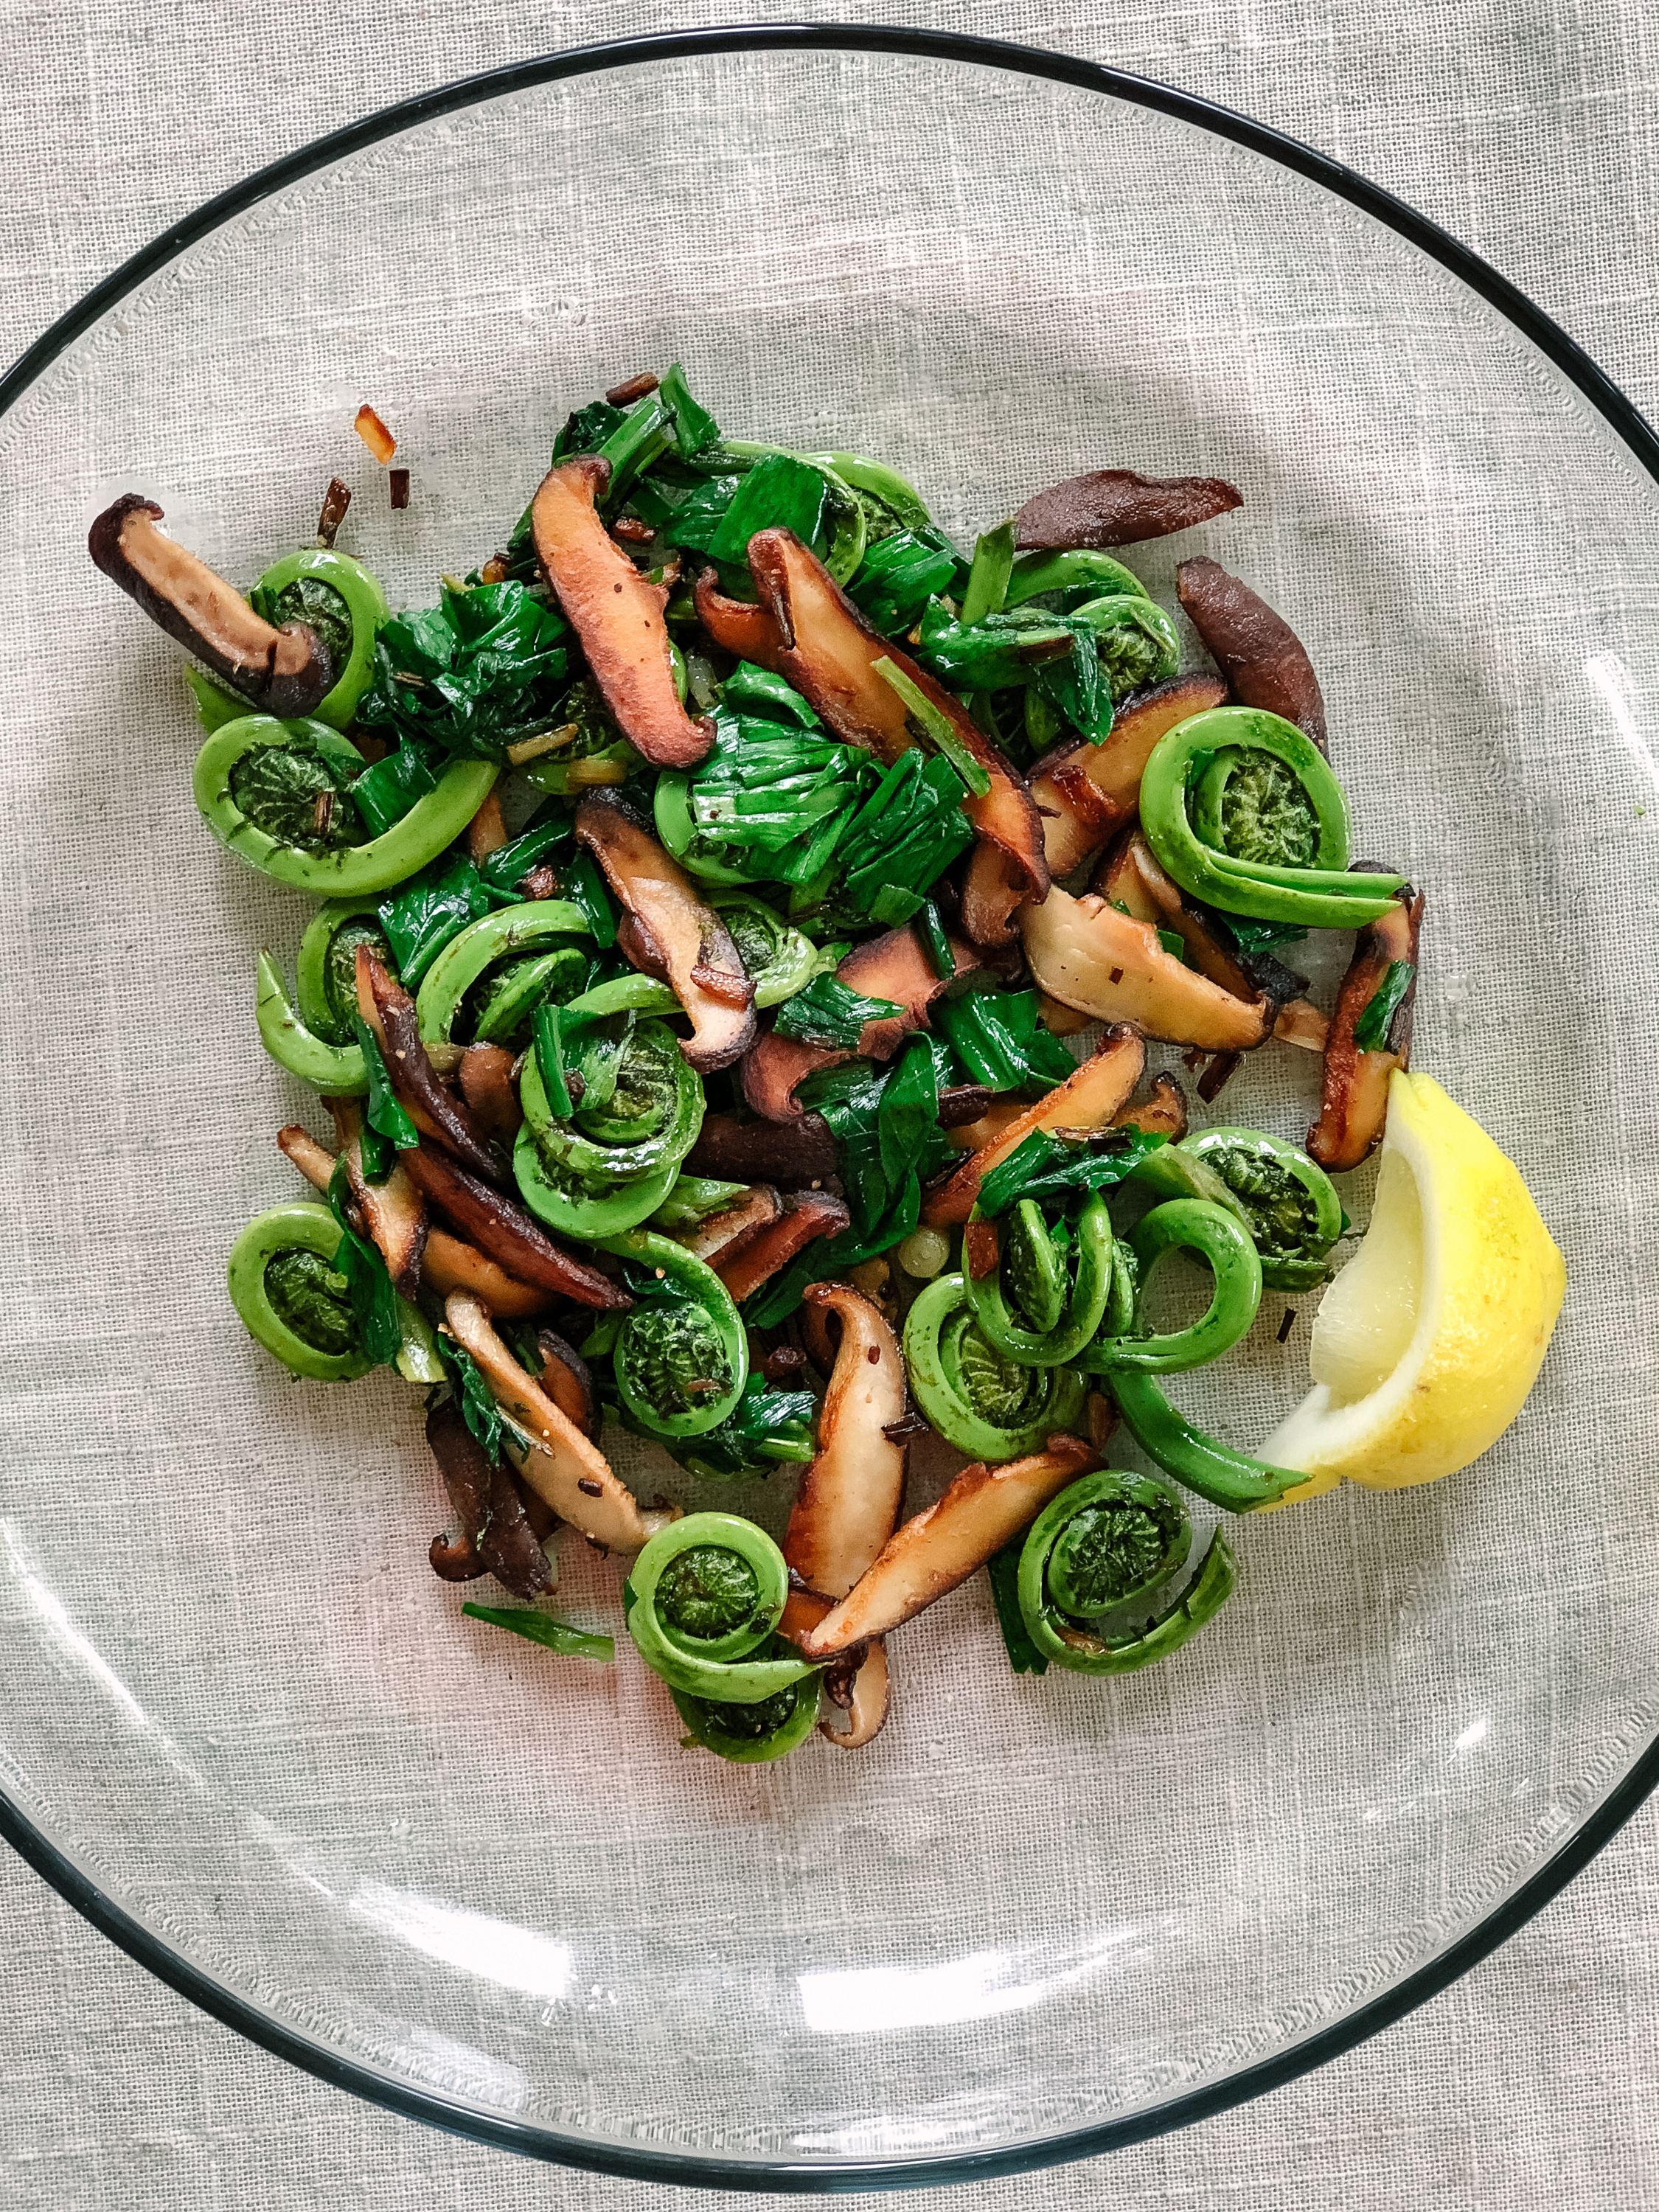 Foraged fiddleheads and ramps with shiitake mushrooms